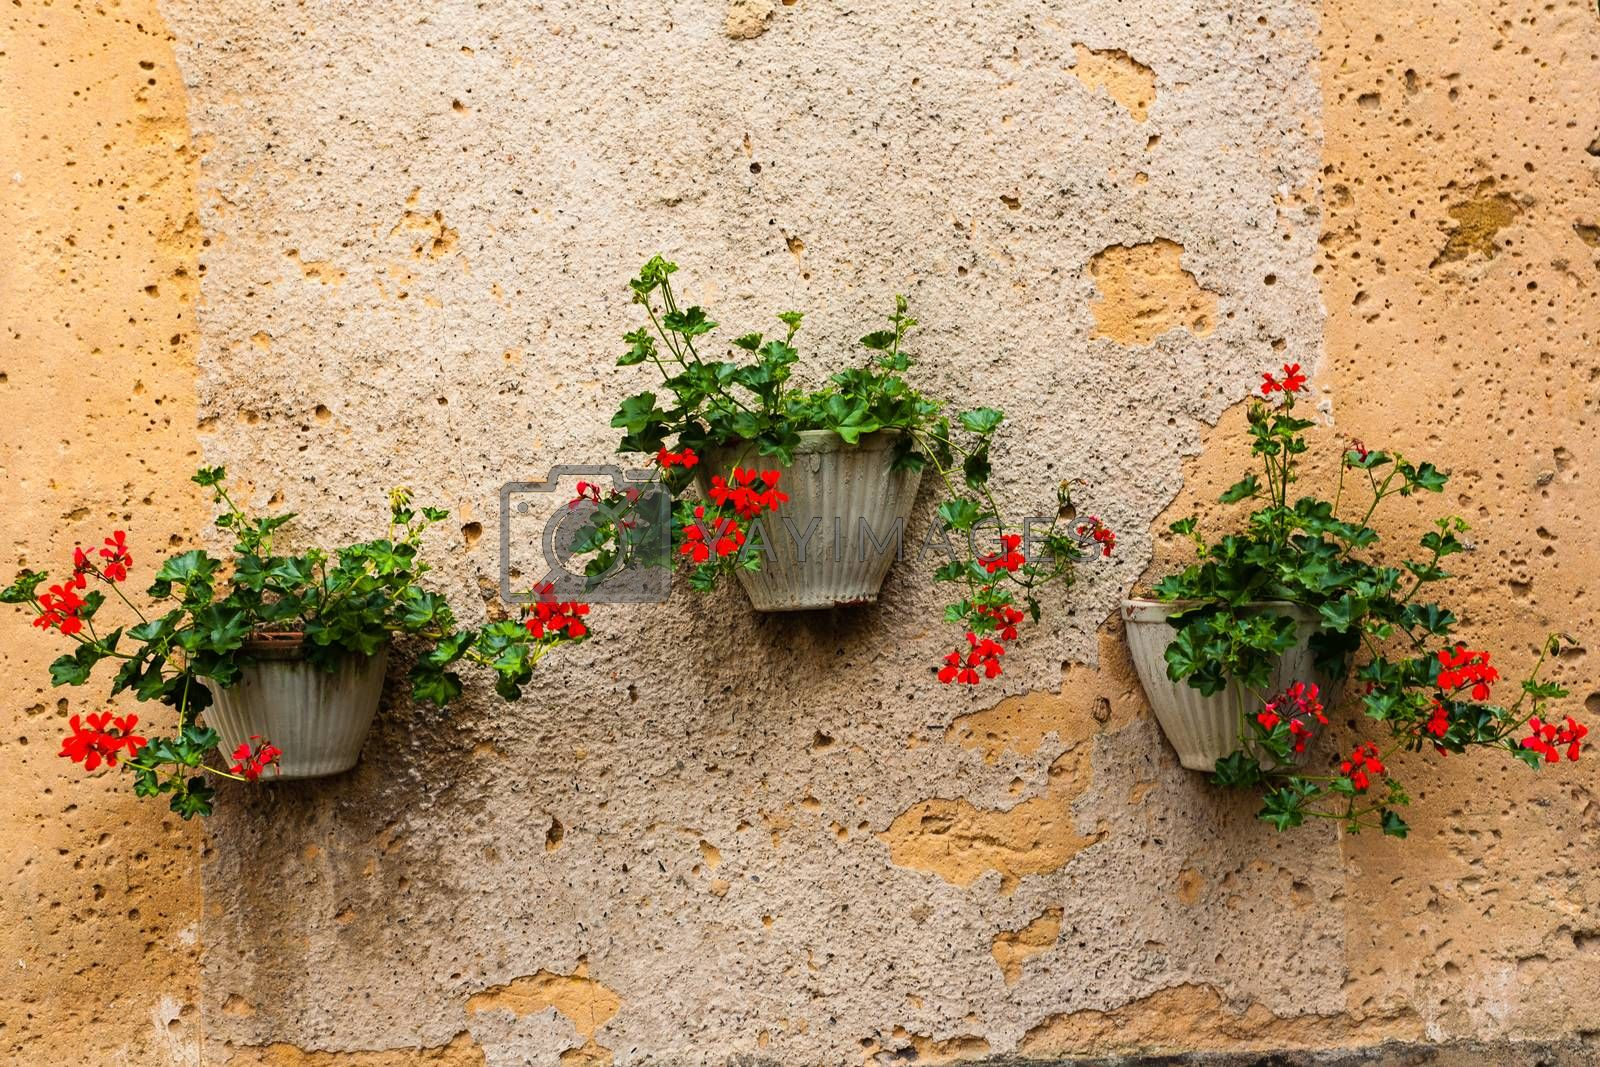 Three geranium pots hanging from a textured wall in the french region of Dordogne